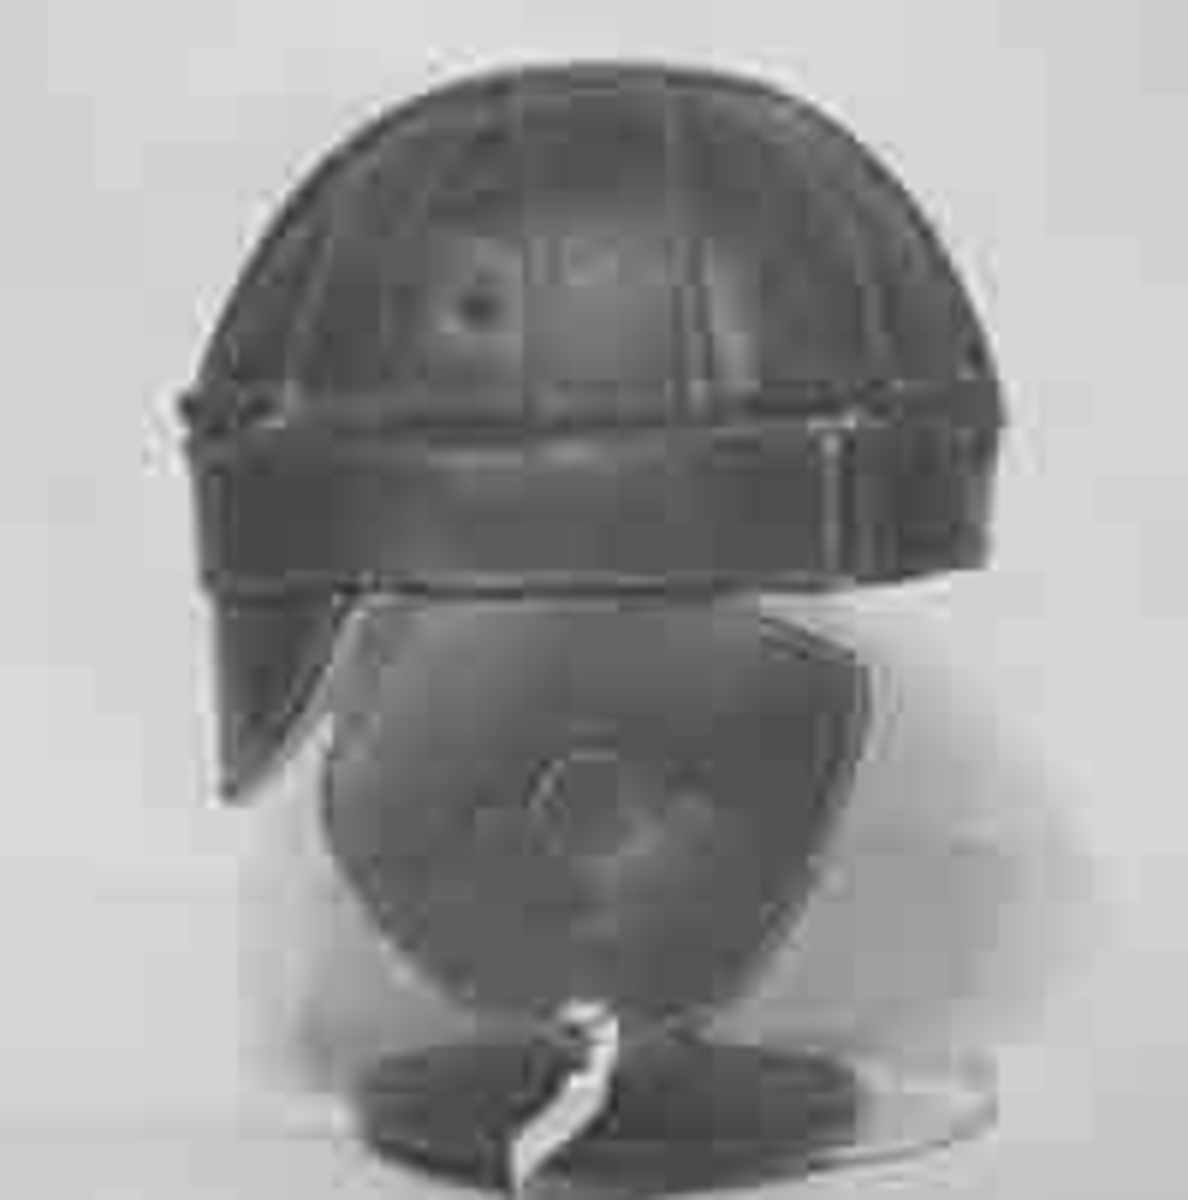 Helmet like that worn from 1916 - 1919